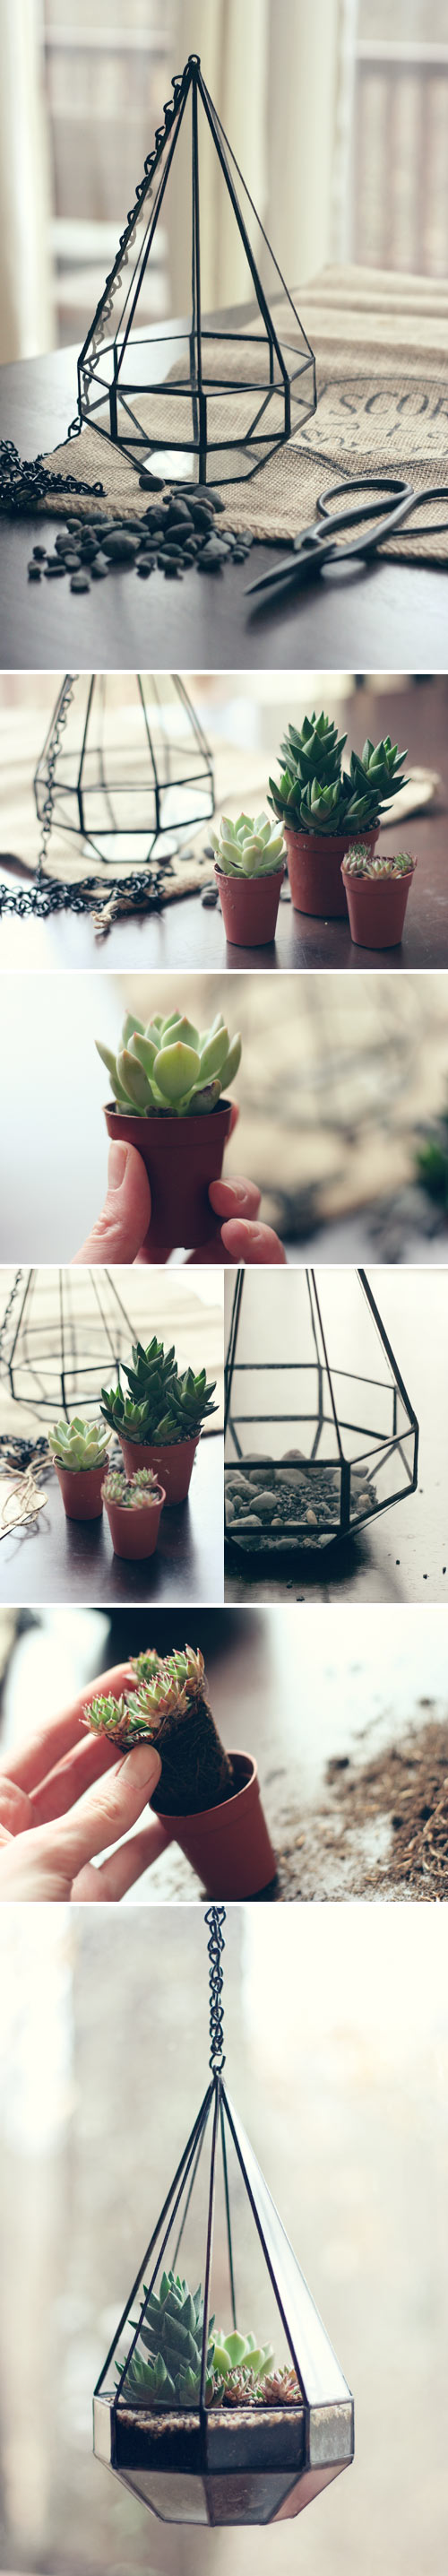 DIY Terrario decorativo